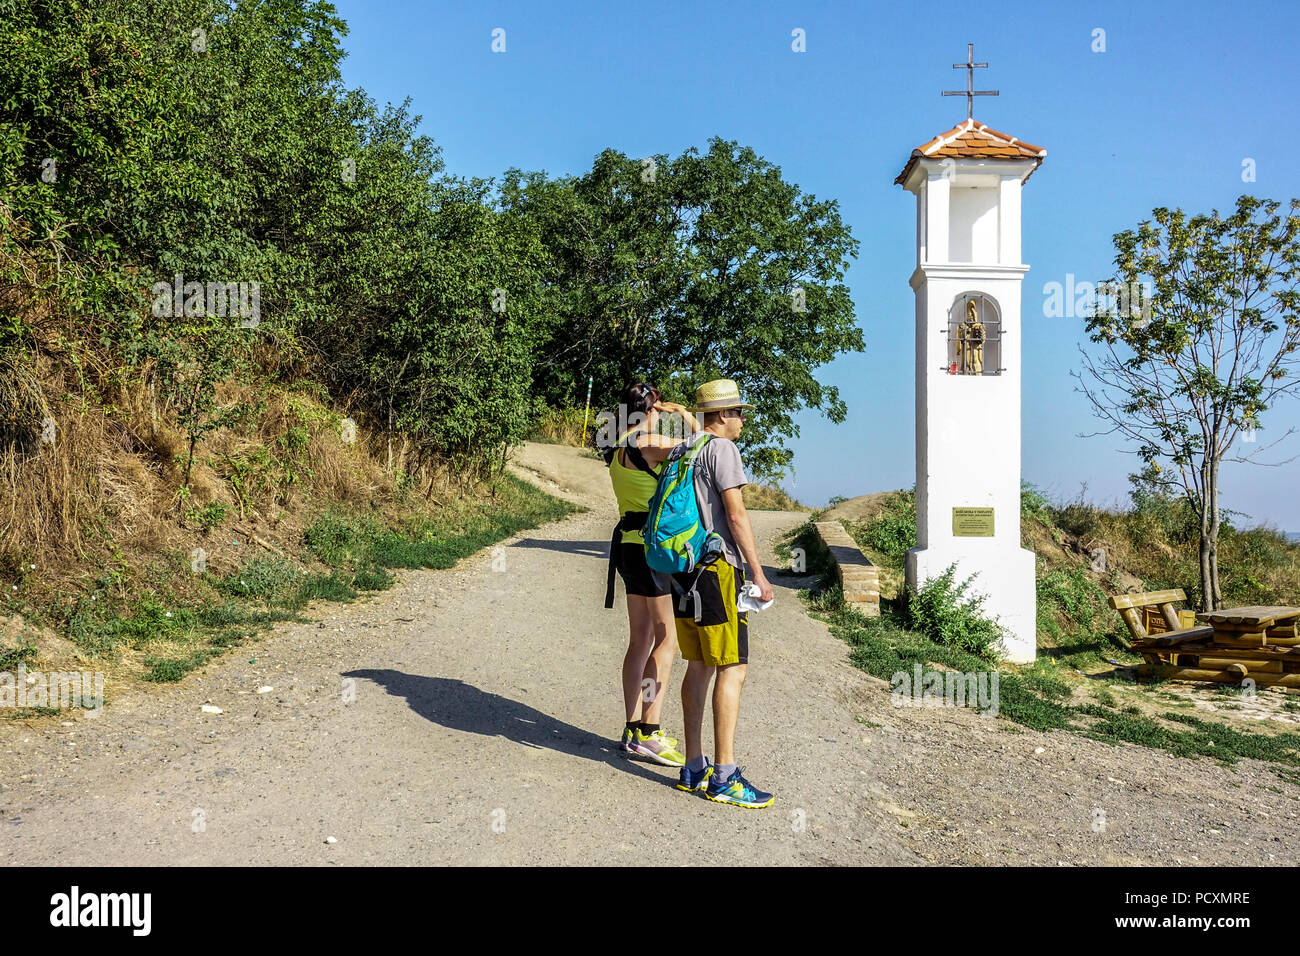 Tourists in the wine region under the Palava mountains, hiking, Pavlov village, South Moravia, Czech Republic - Stock Image